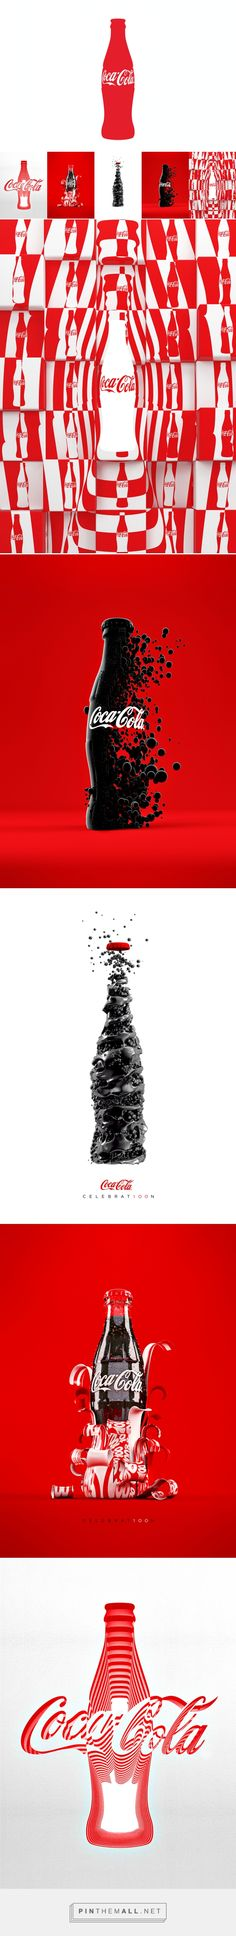 MashUp Coke on Behance curated by Packaging Diva PD. Stellar Coke packaging design concepts PD